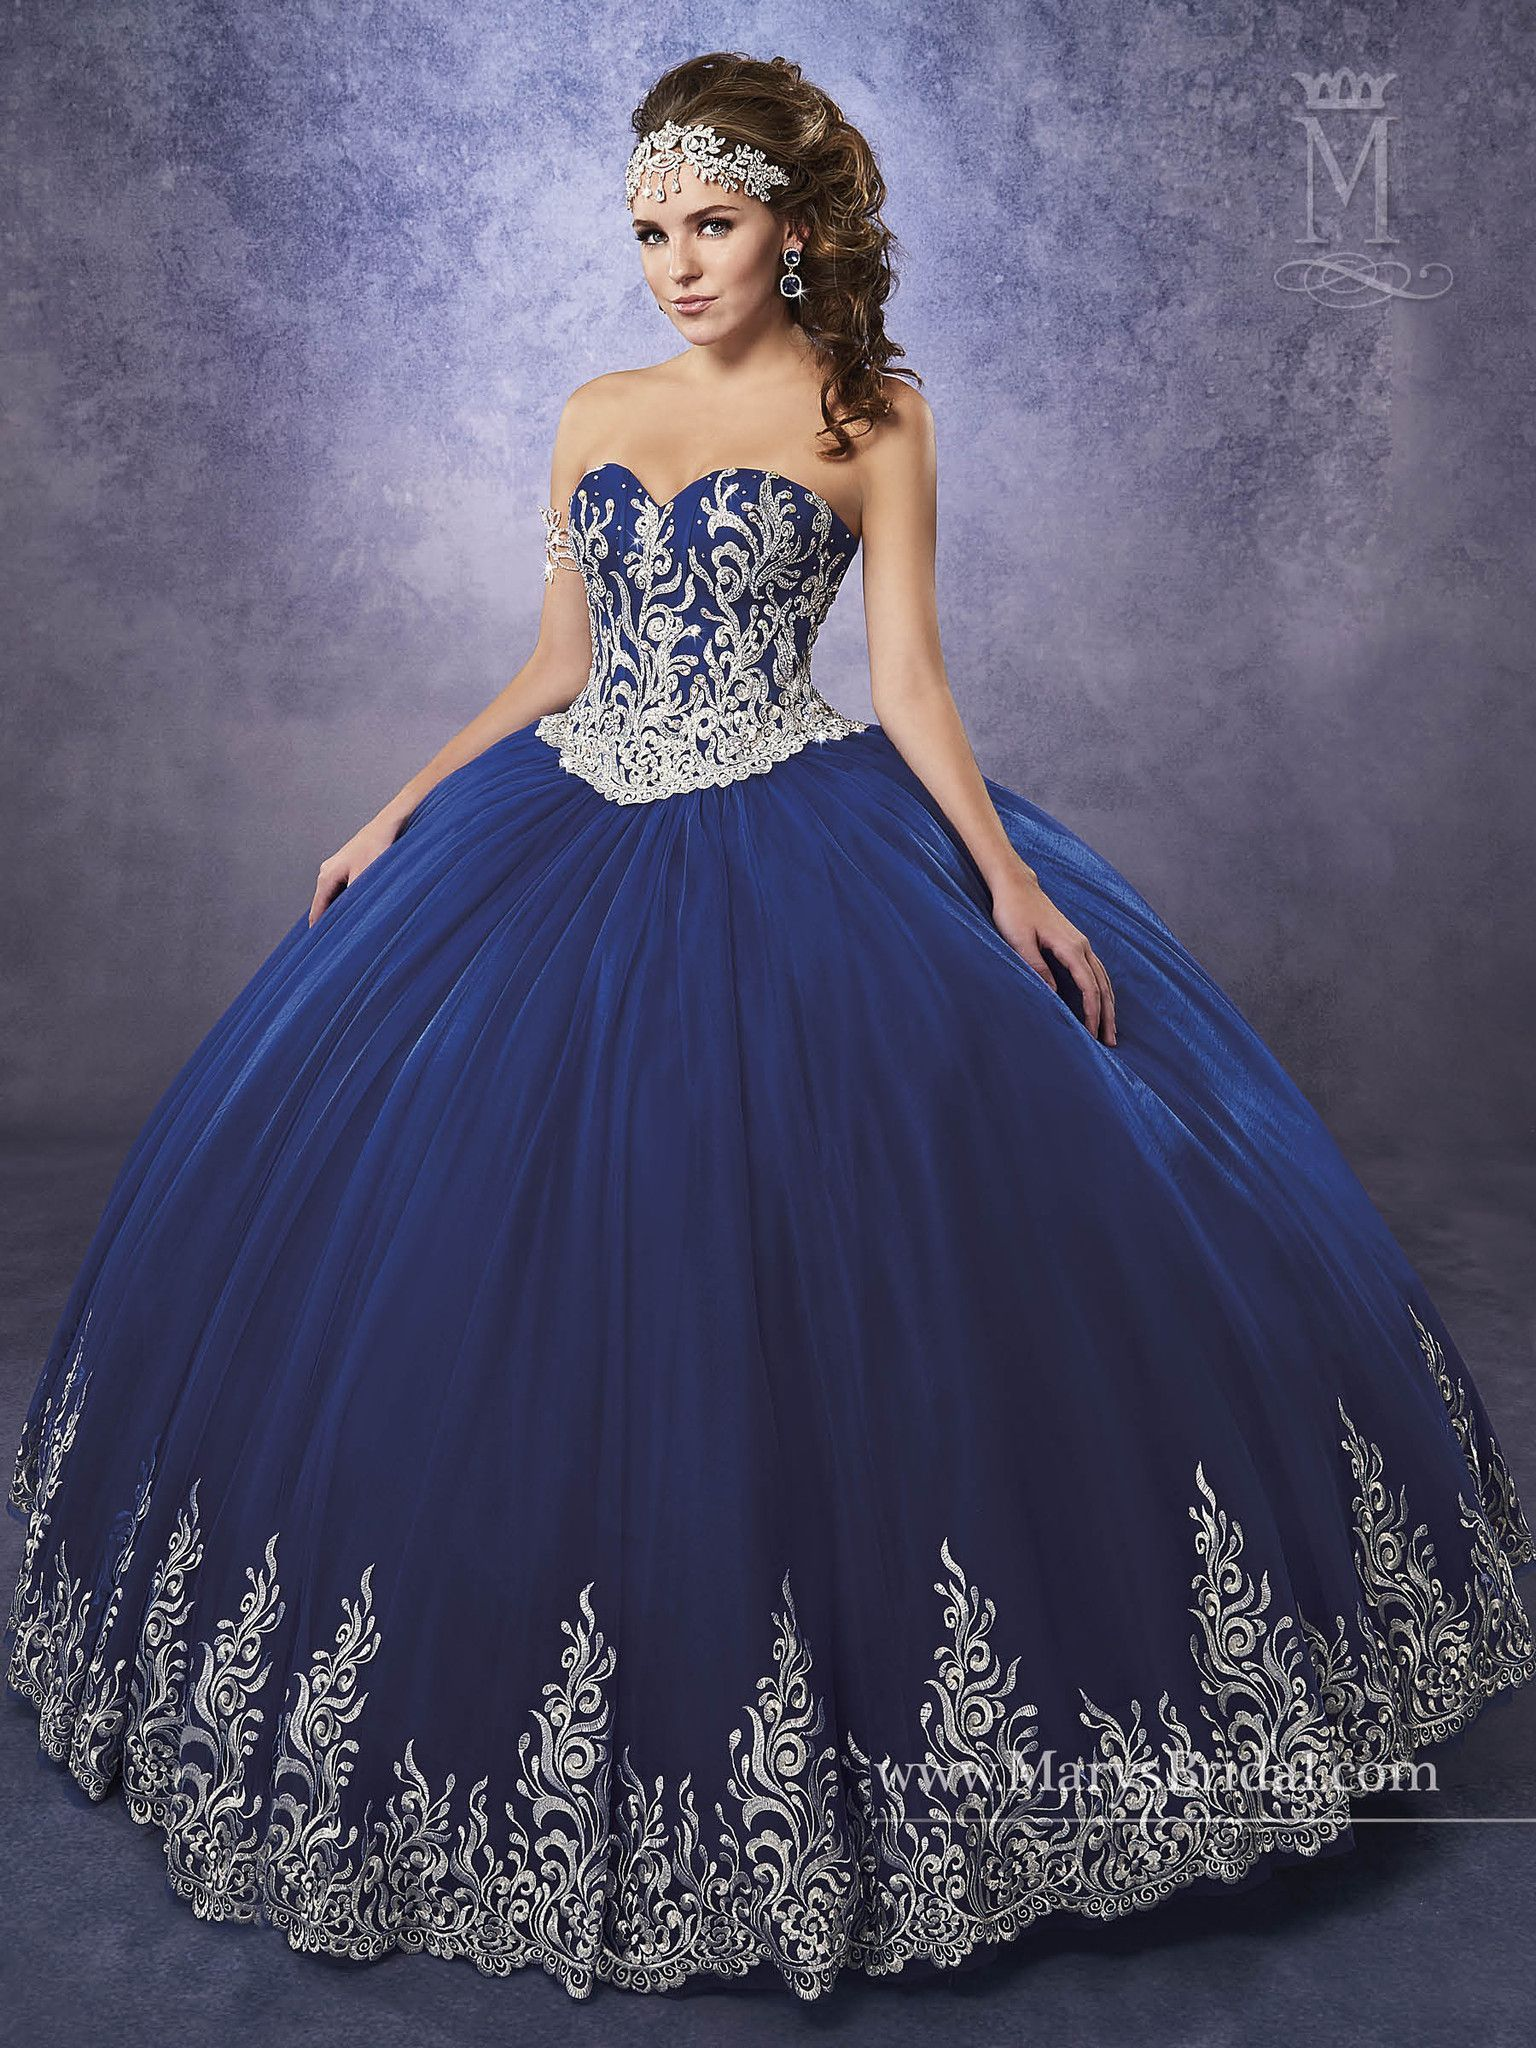 ... Bridal Princess Collection Quinceanera Dress Style 4Q478 at your Sweet 15  party or at any formal event. Strapless tulle quinceanera ball gown with swe fa871cbc6720